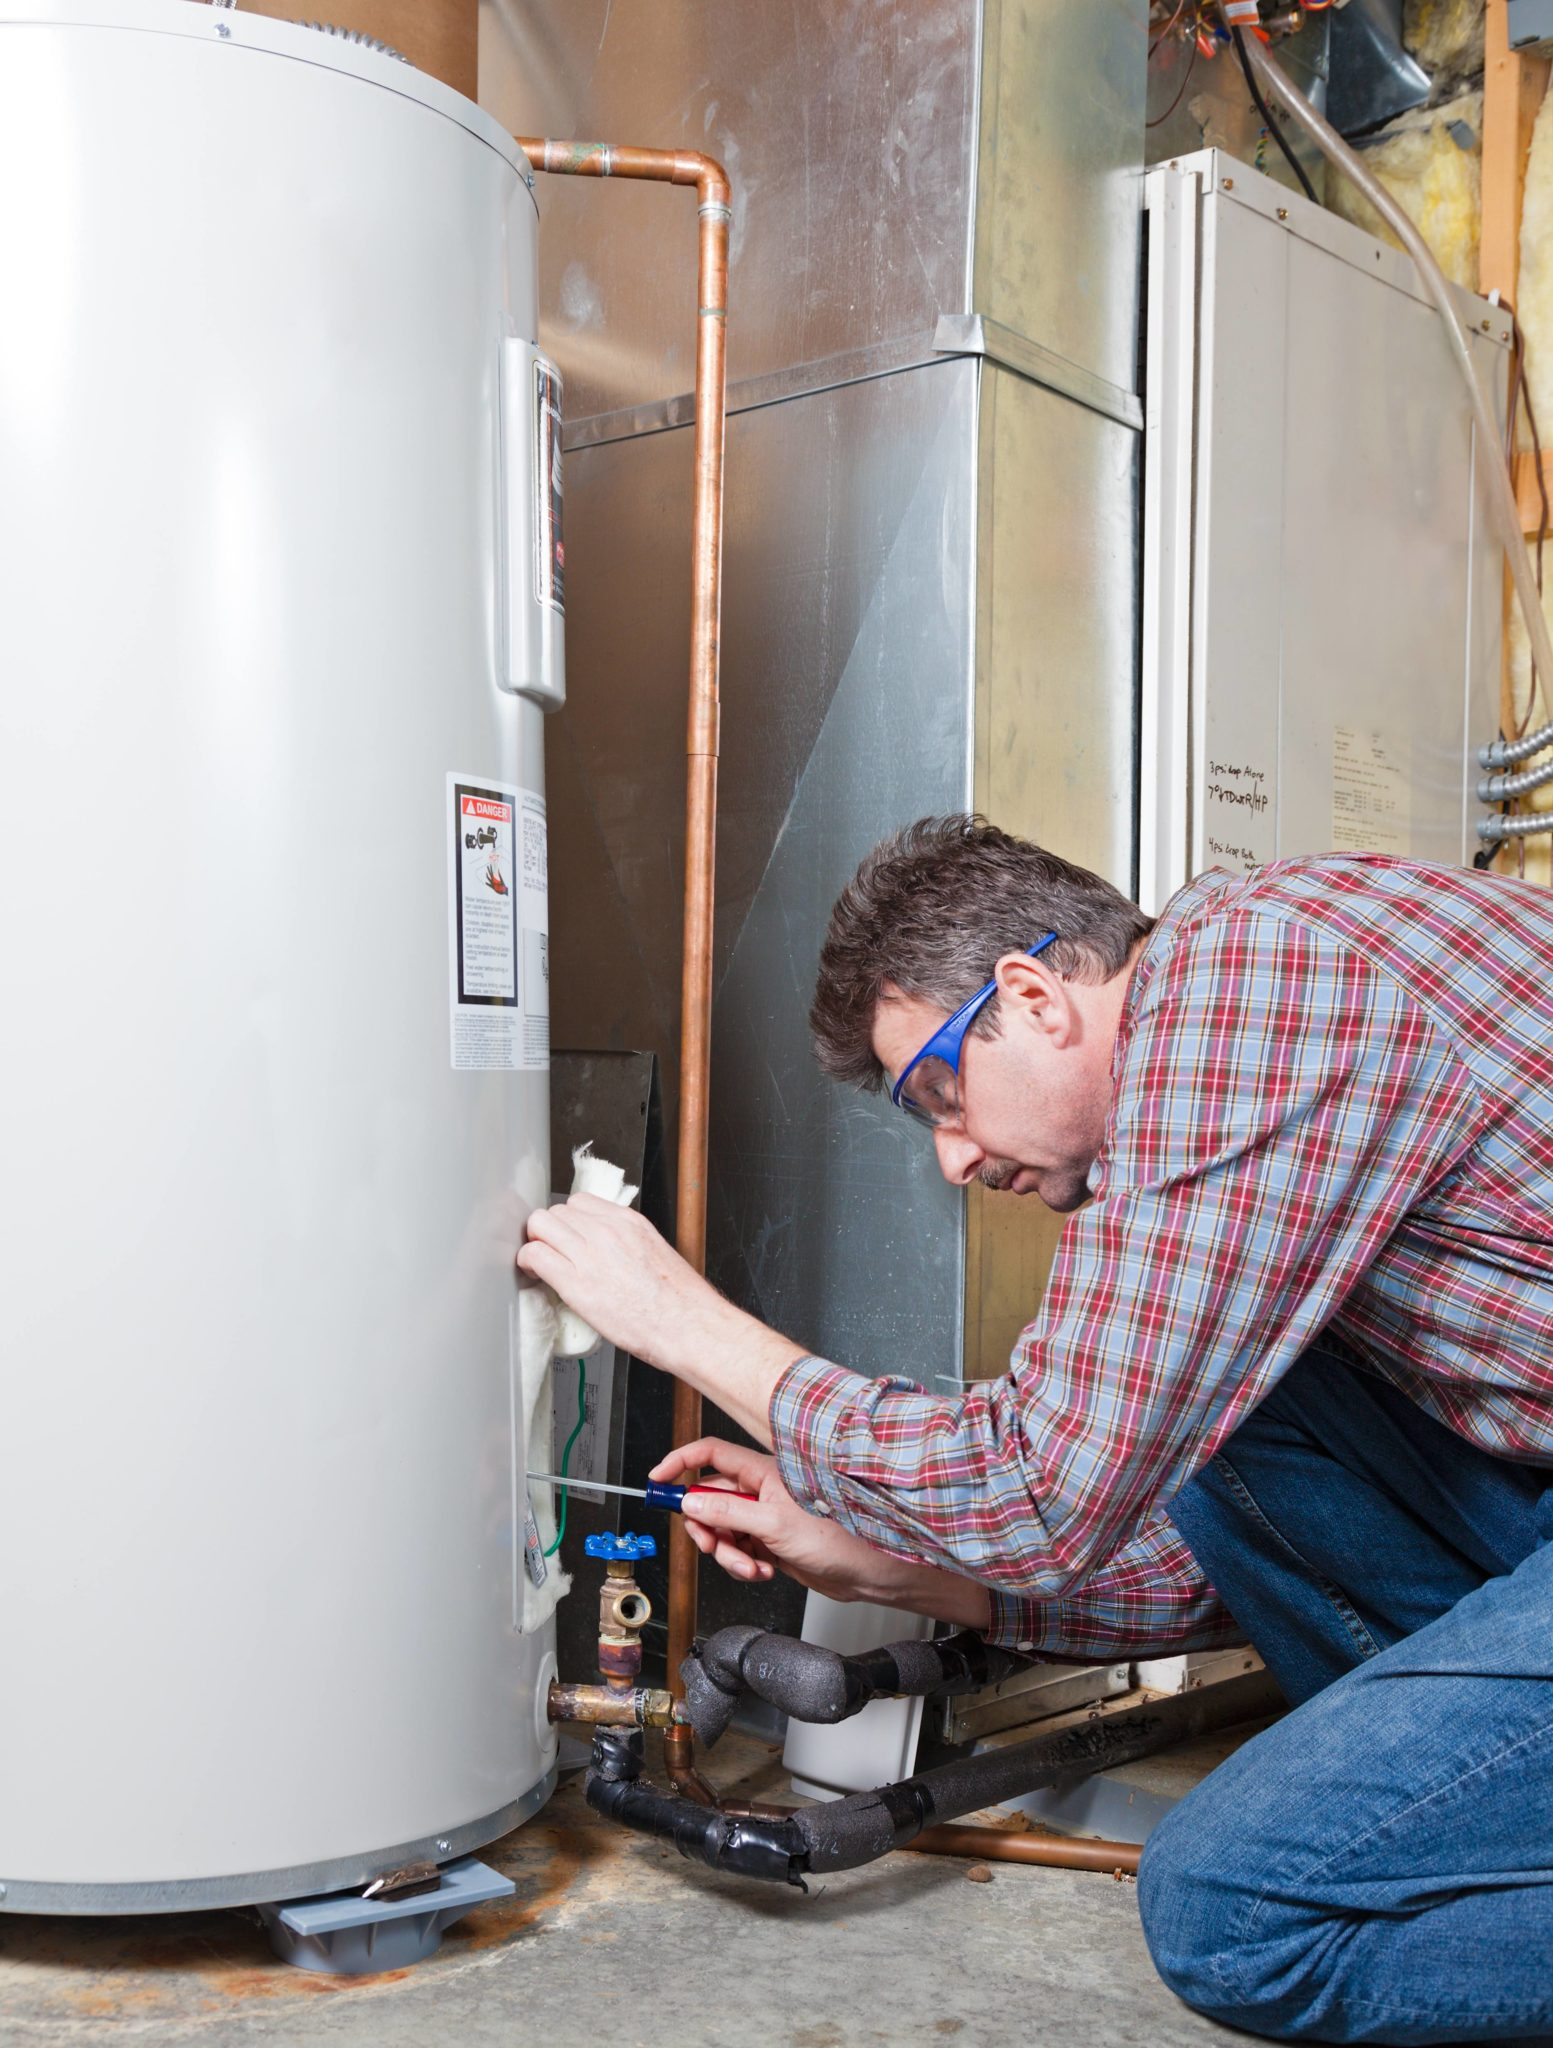 clean water heater, new home checklist, home maintenance checklist